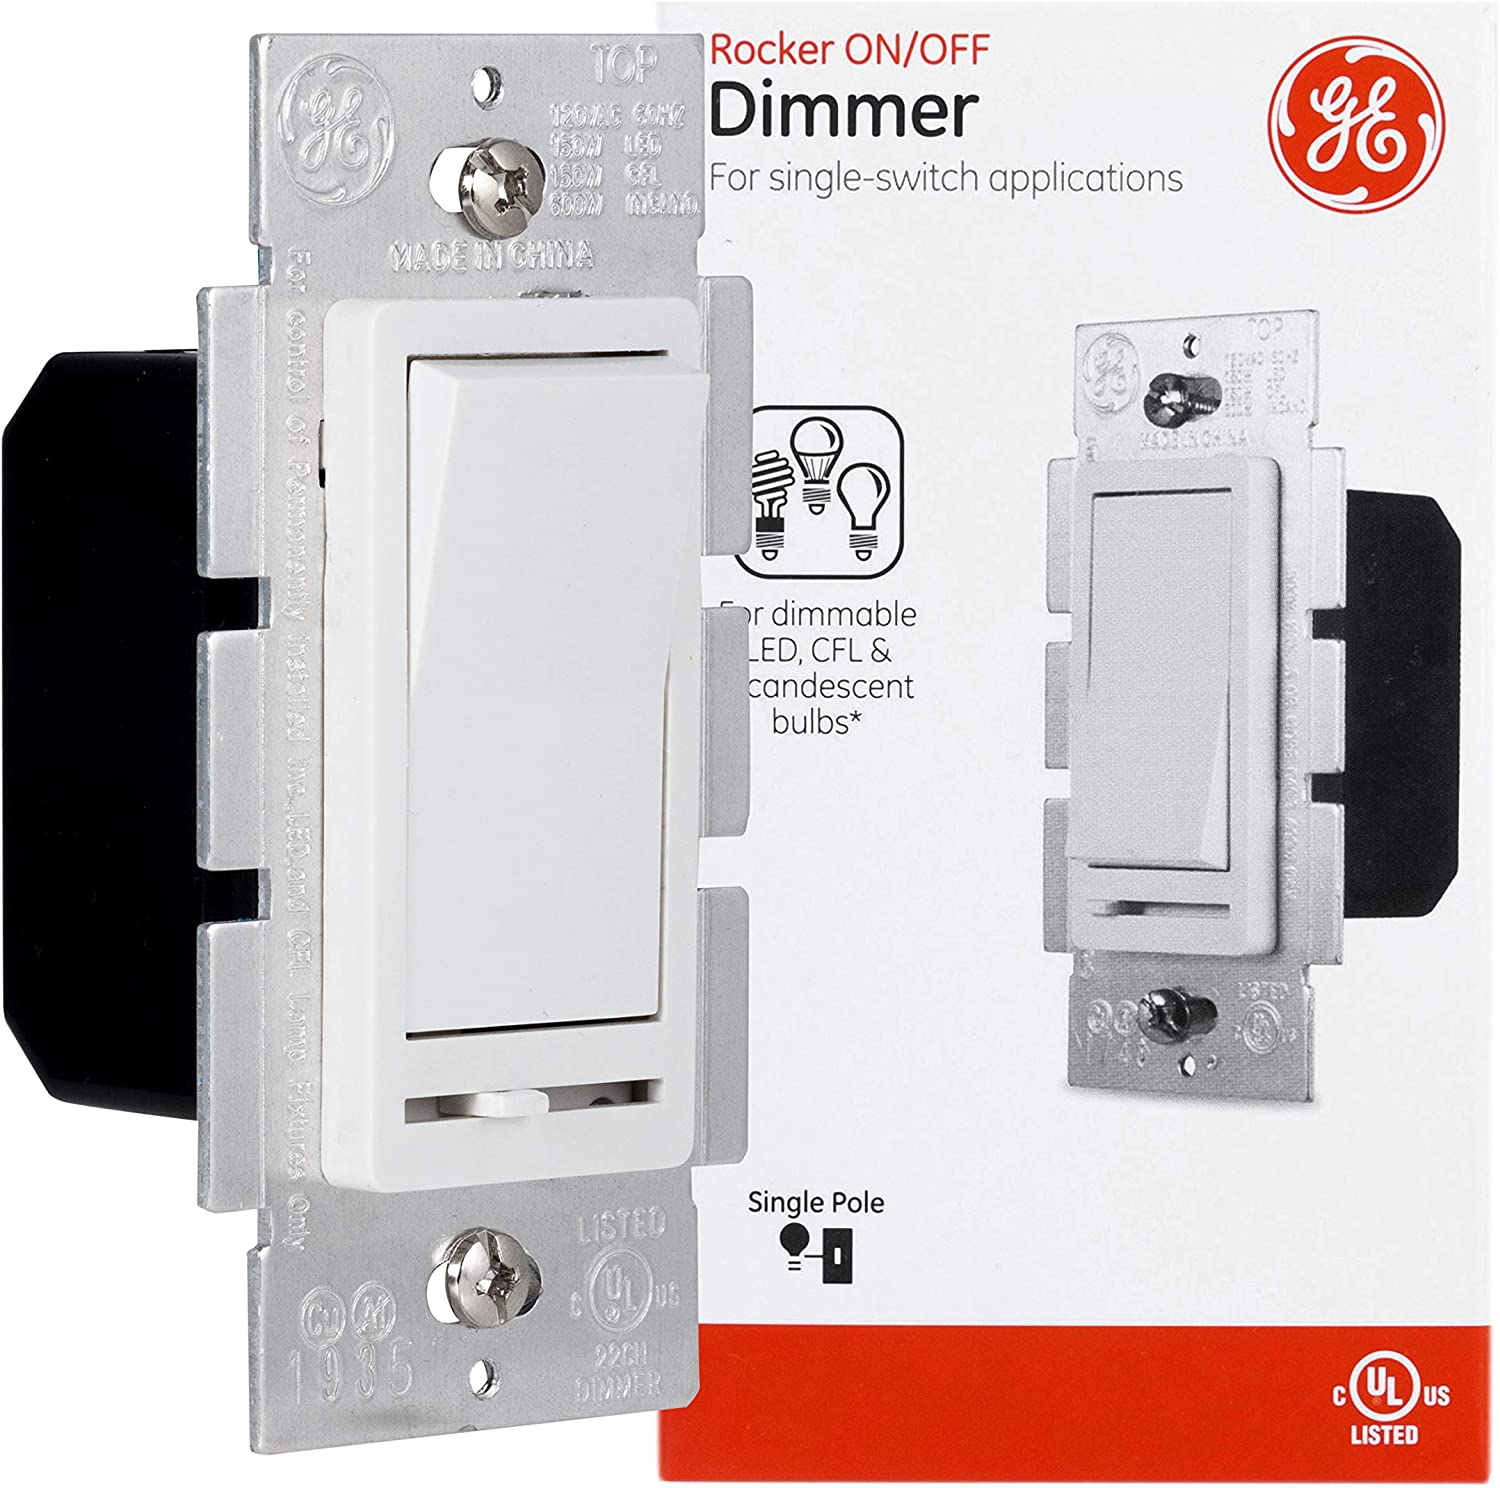 GE Slide Dimmer Rocker Wall Switch, Single Pole, For Dimmable LED, CFL, Incandescent Light, Bulbs, UL Listed, White, 10464, 1 Pack - -